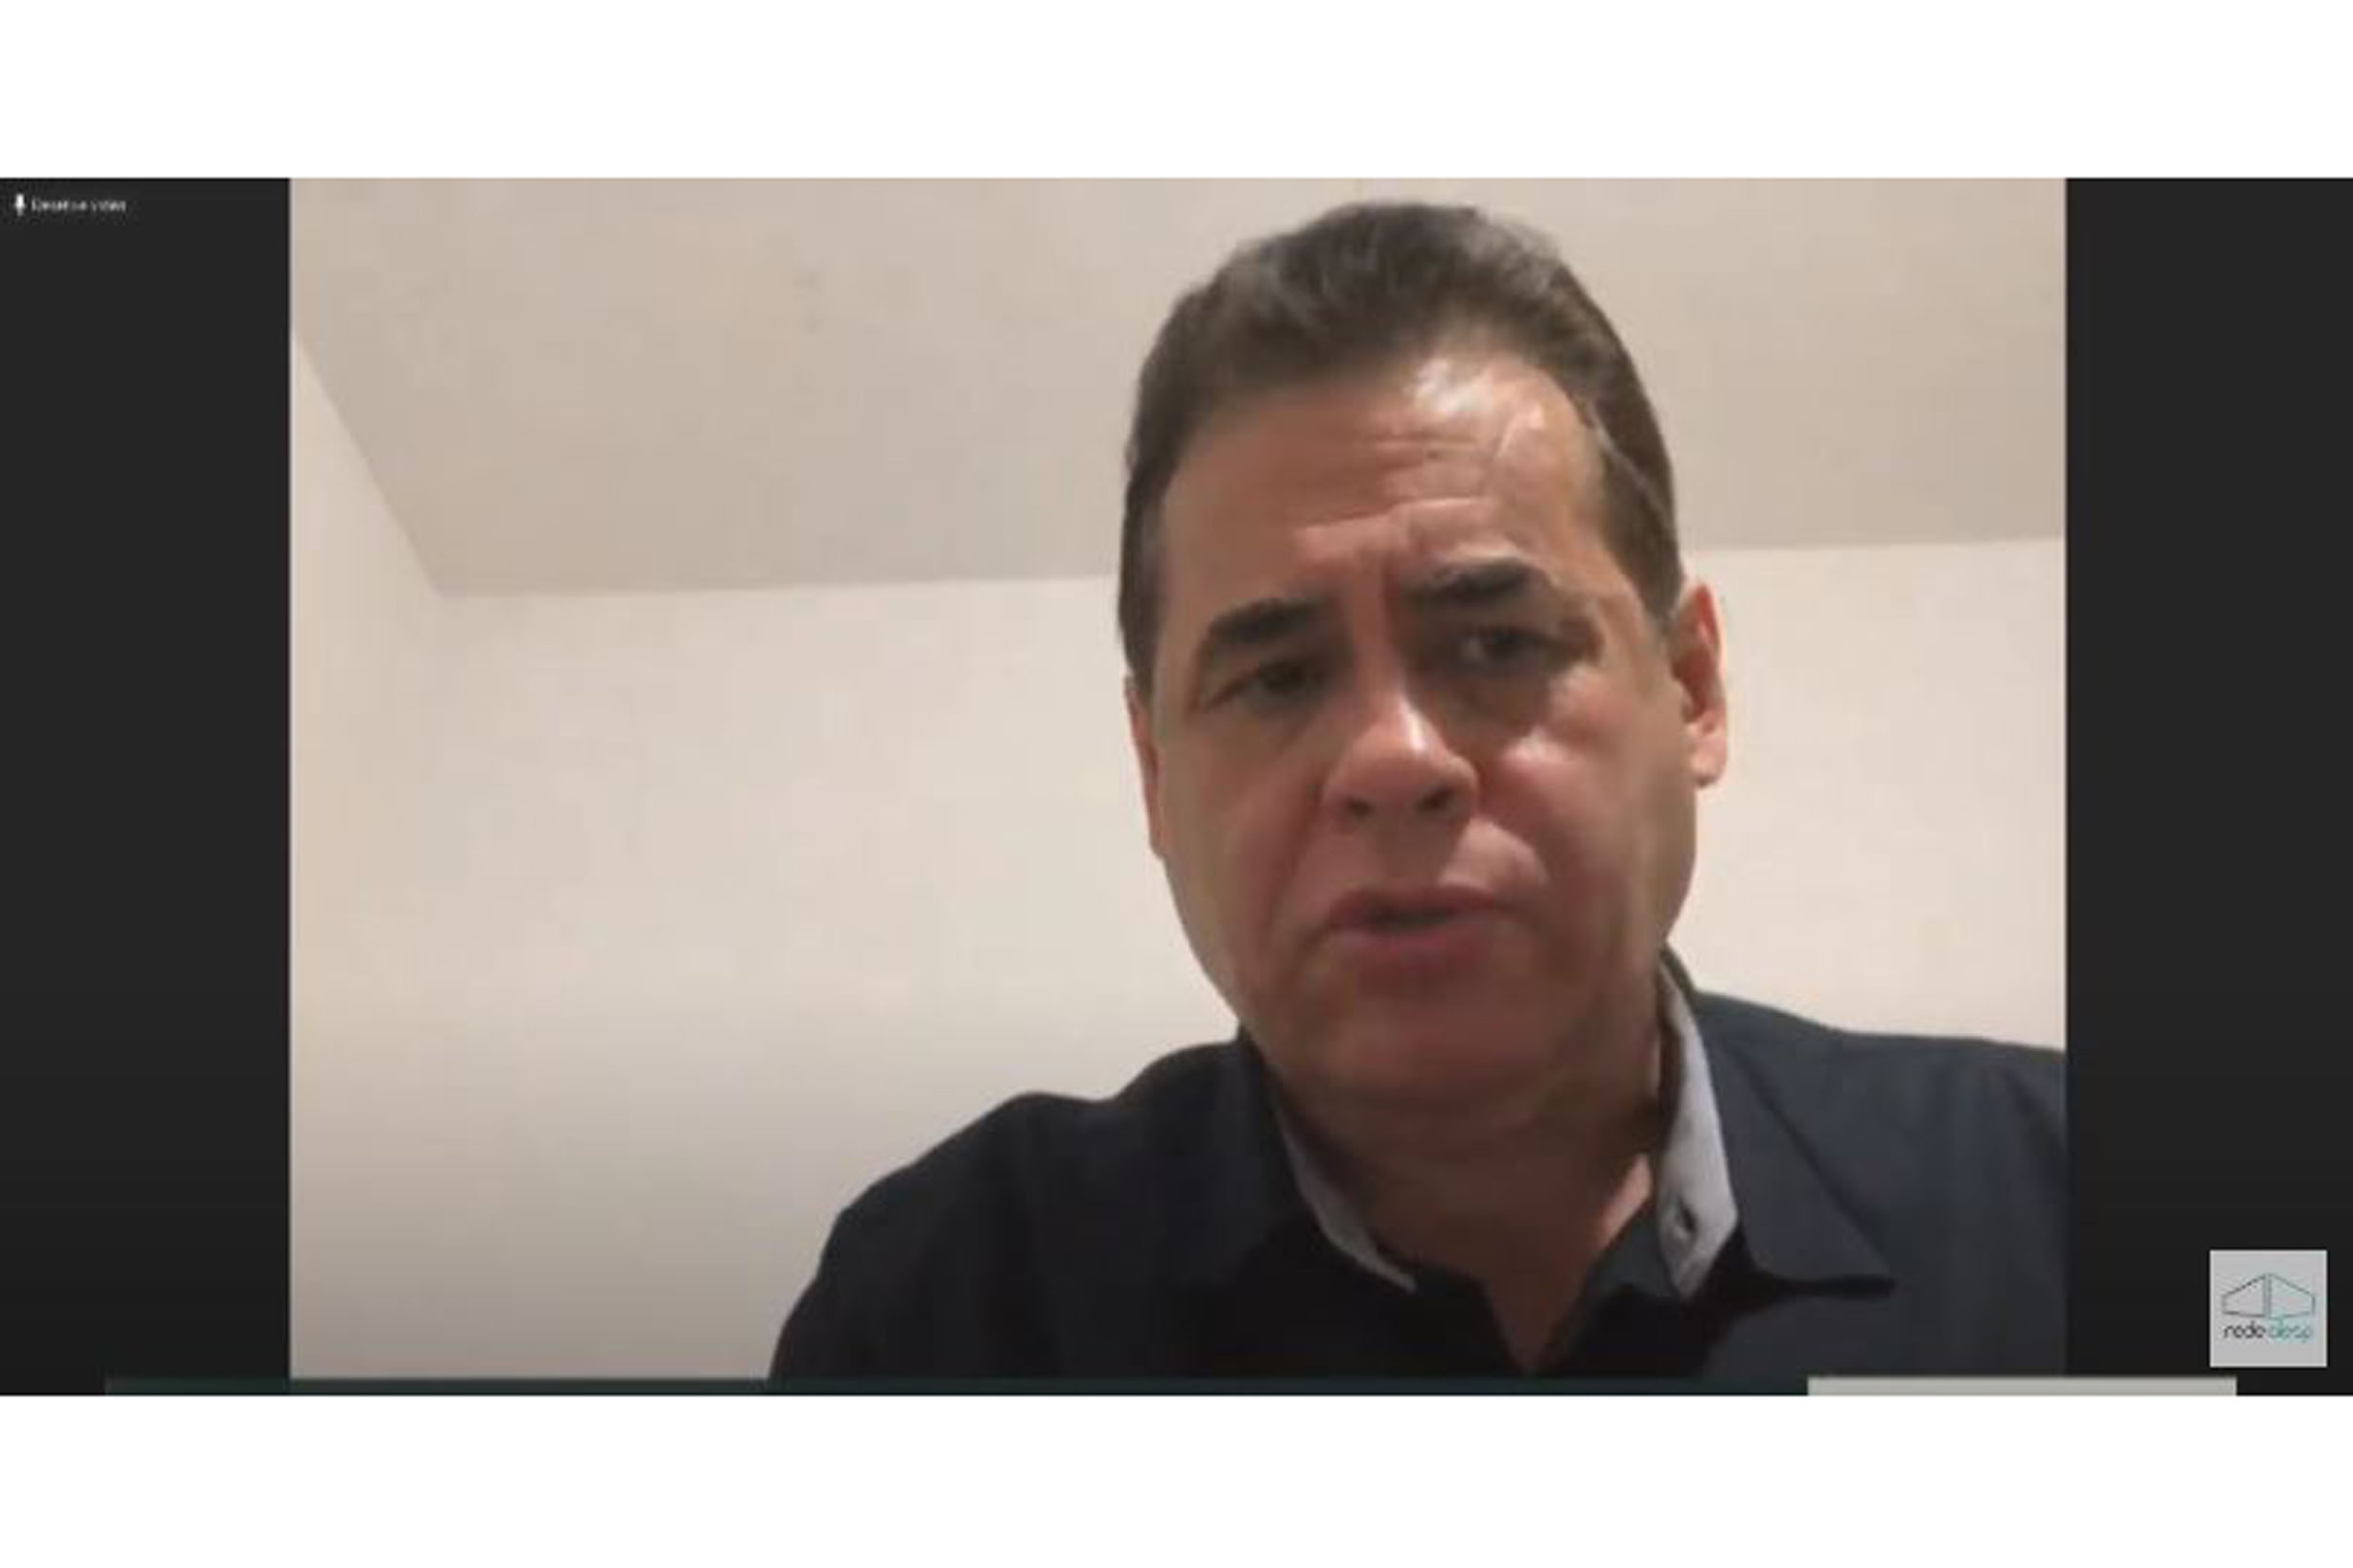 Jorge Wilson Xerife do Consumidor <a style='float:right' href='https://www3.al.sp.gov.br/repositorio/noticia/N-06-2020/fg250154.jpg' target=_blank><img src='/_img/material-file-download-white.png' width='14px' alt='Clique para baixar a imagem'></a>